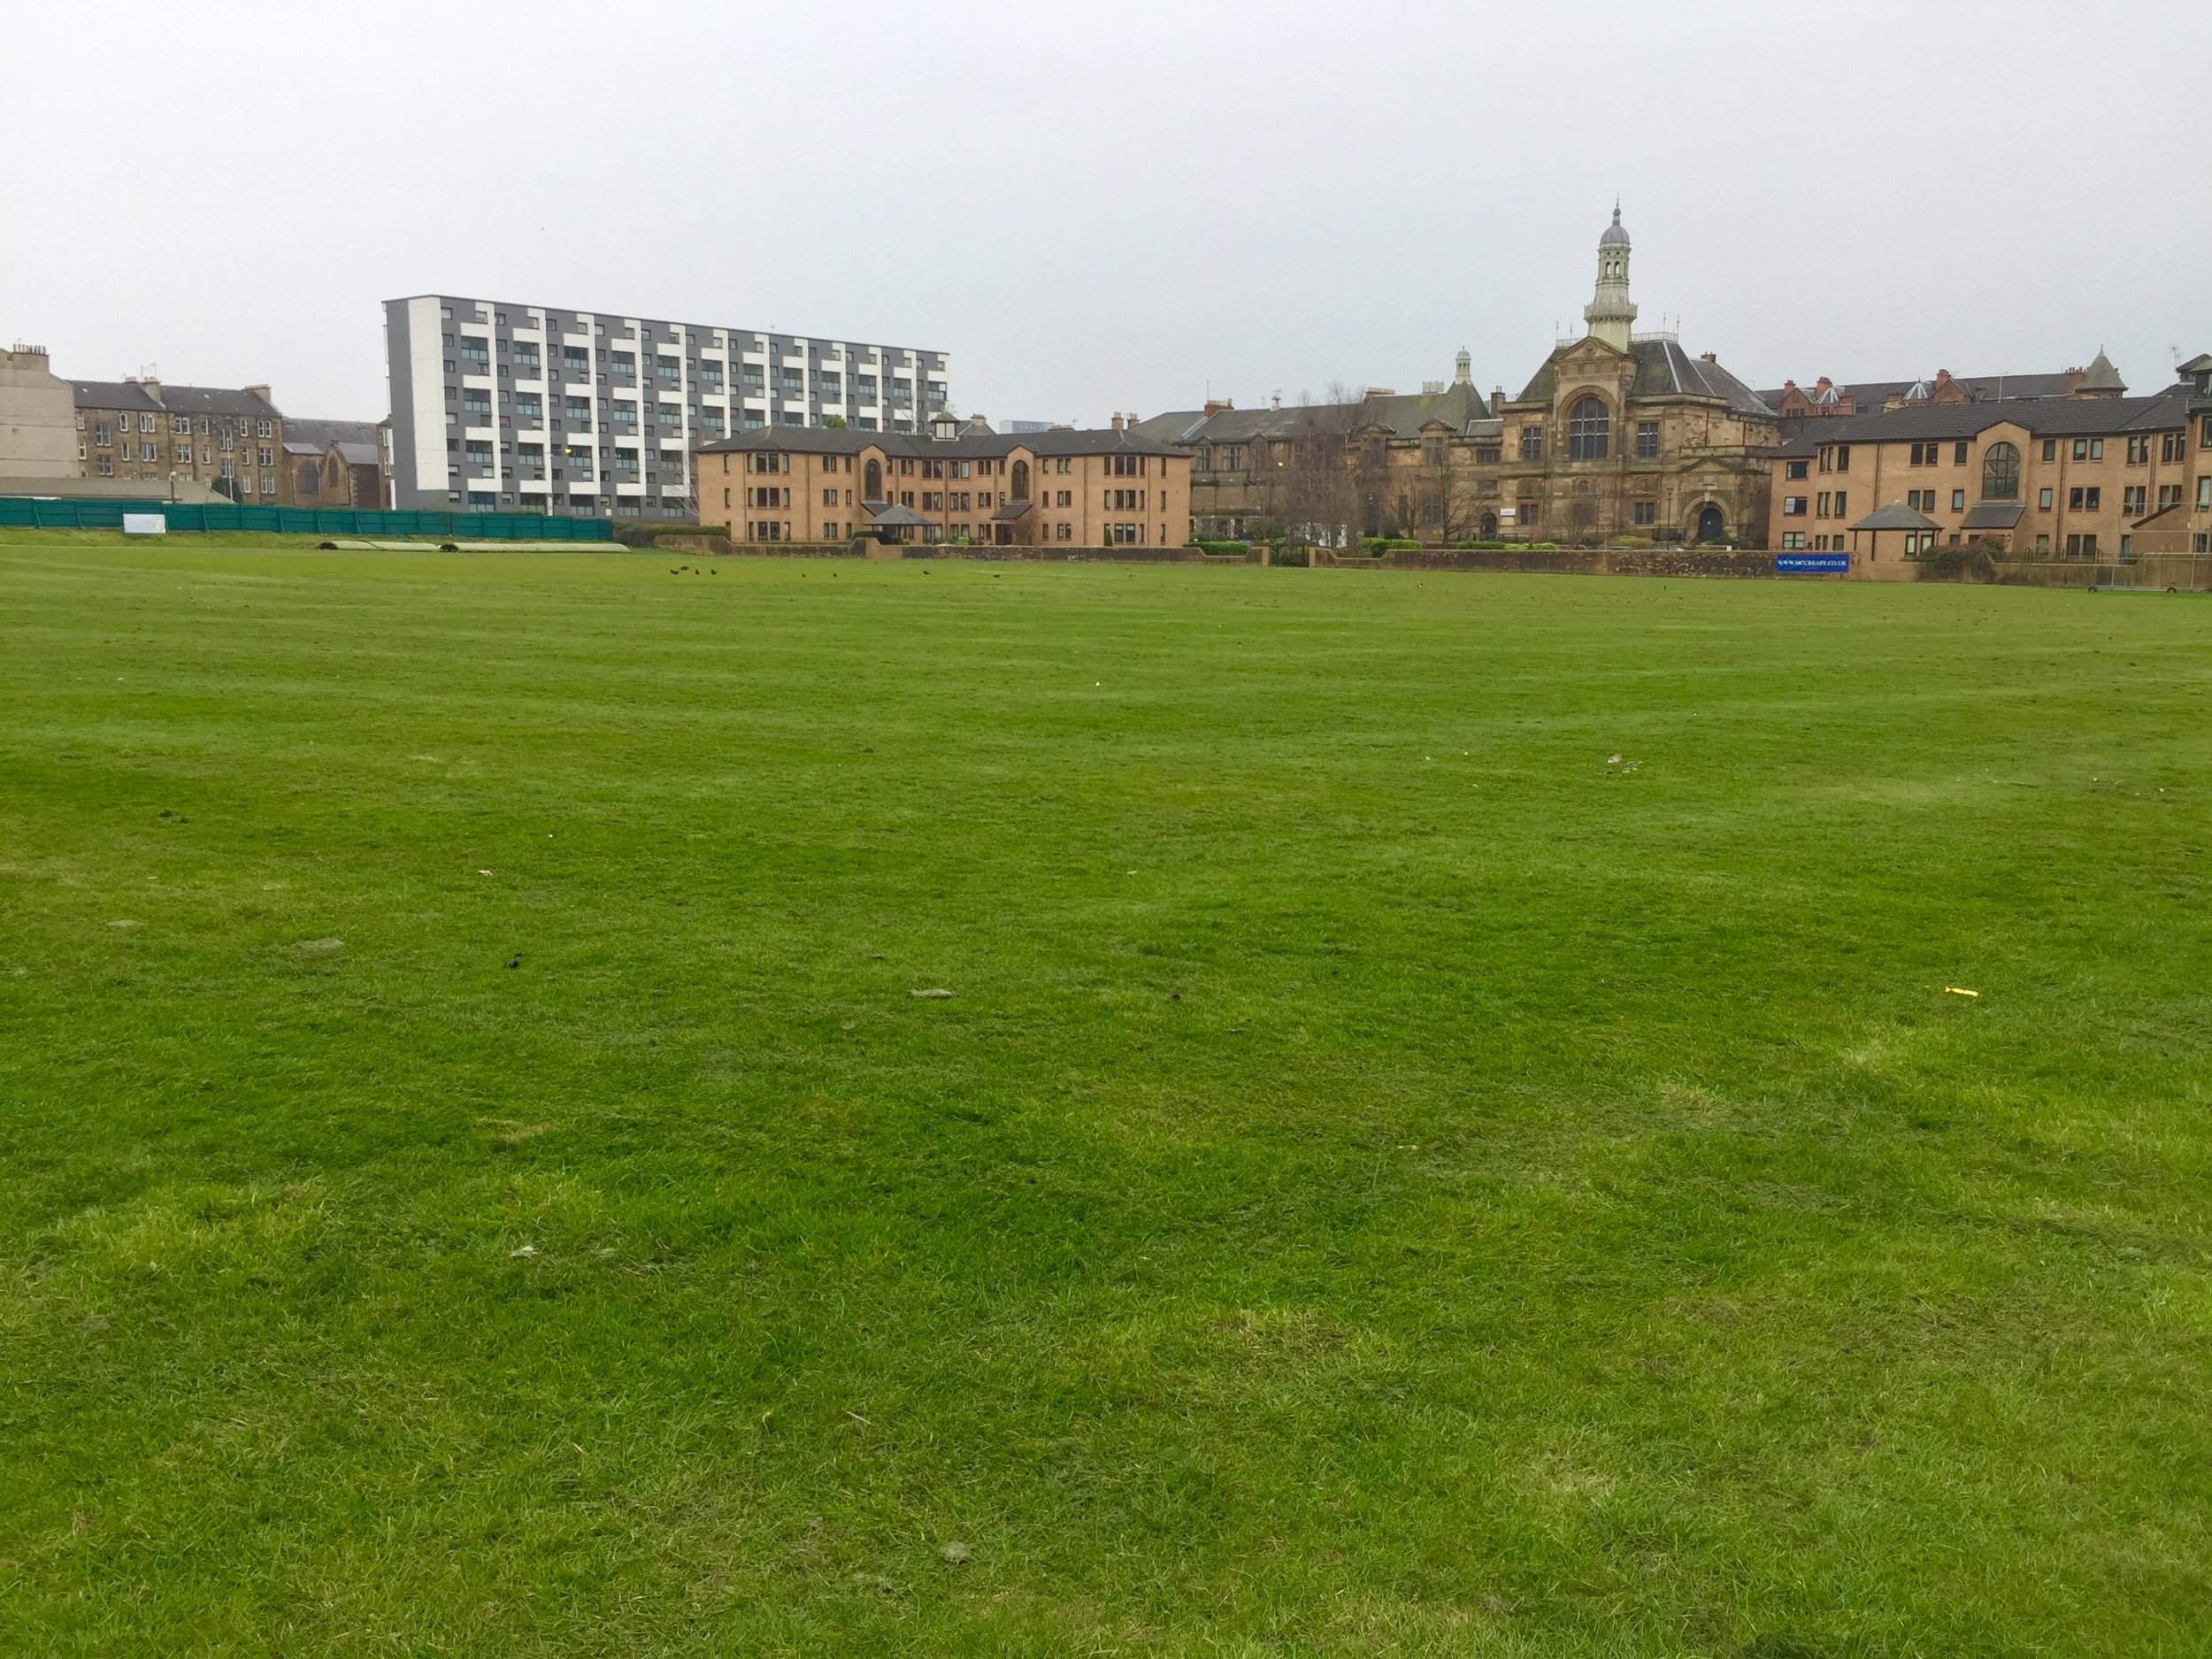 The West of Scotland Cricket Club outfield gets a spring haircut.